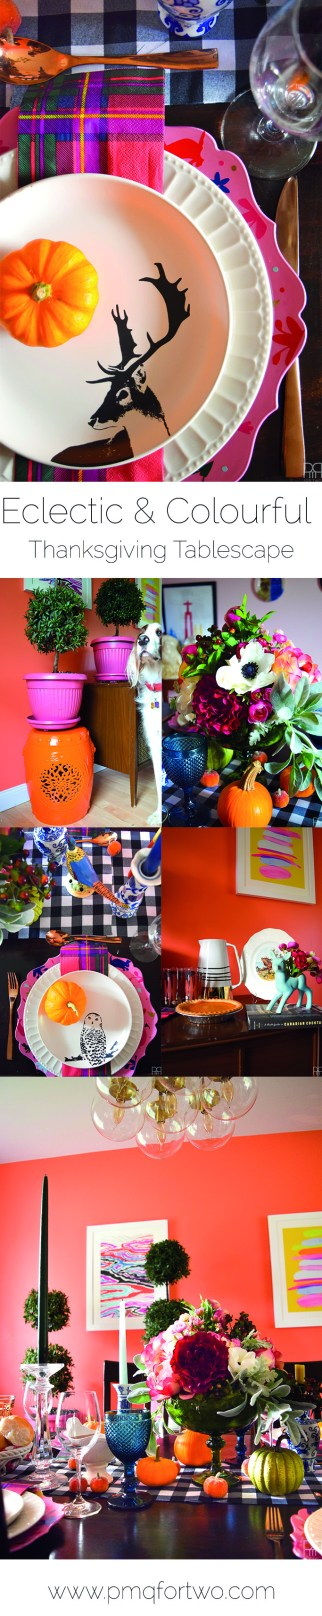 eclectic-colourful-thanksgiving-tablescape